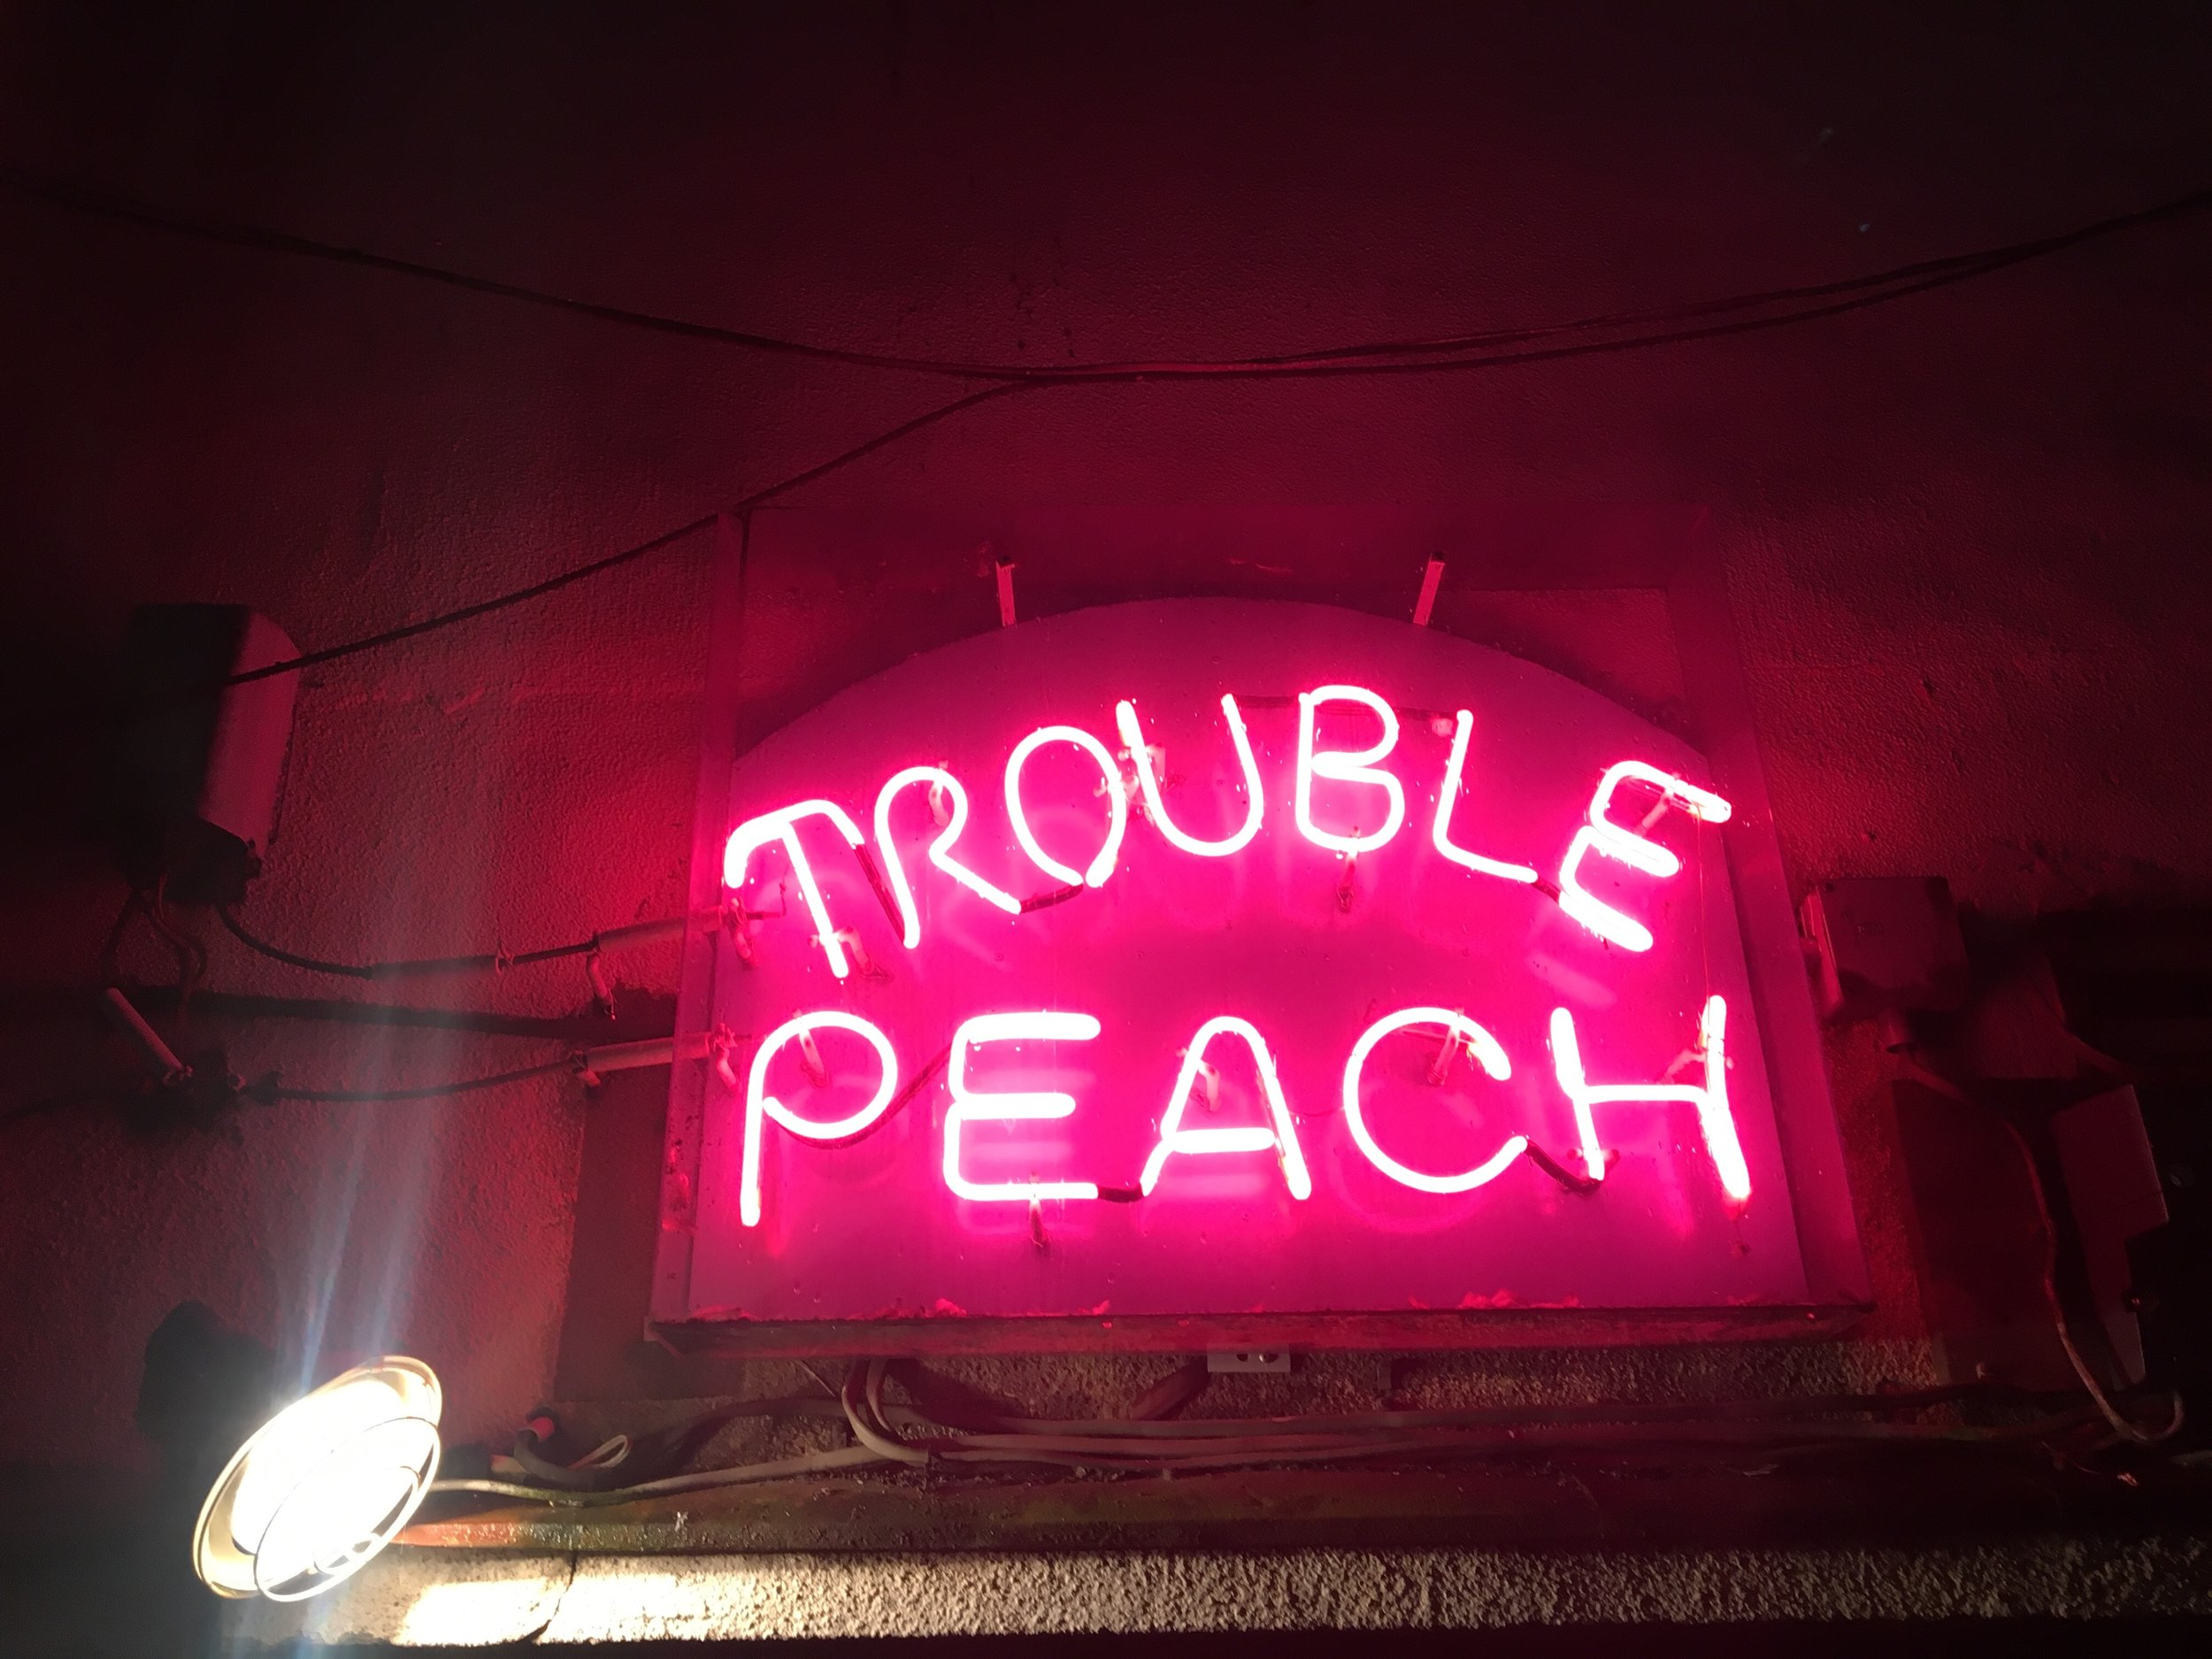 Trouble peach. some night exploring the bar vibes in kings st'